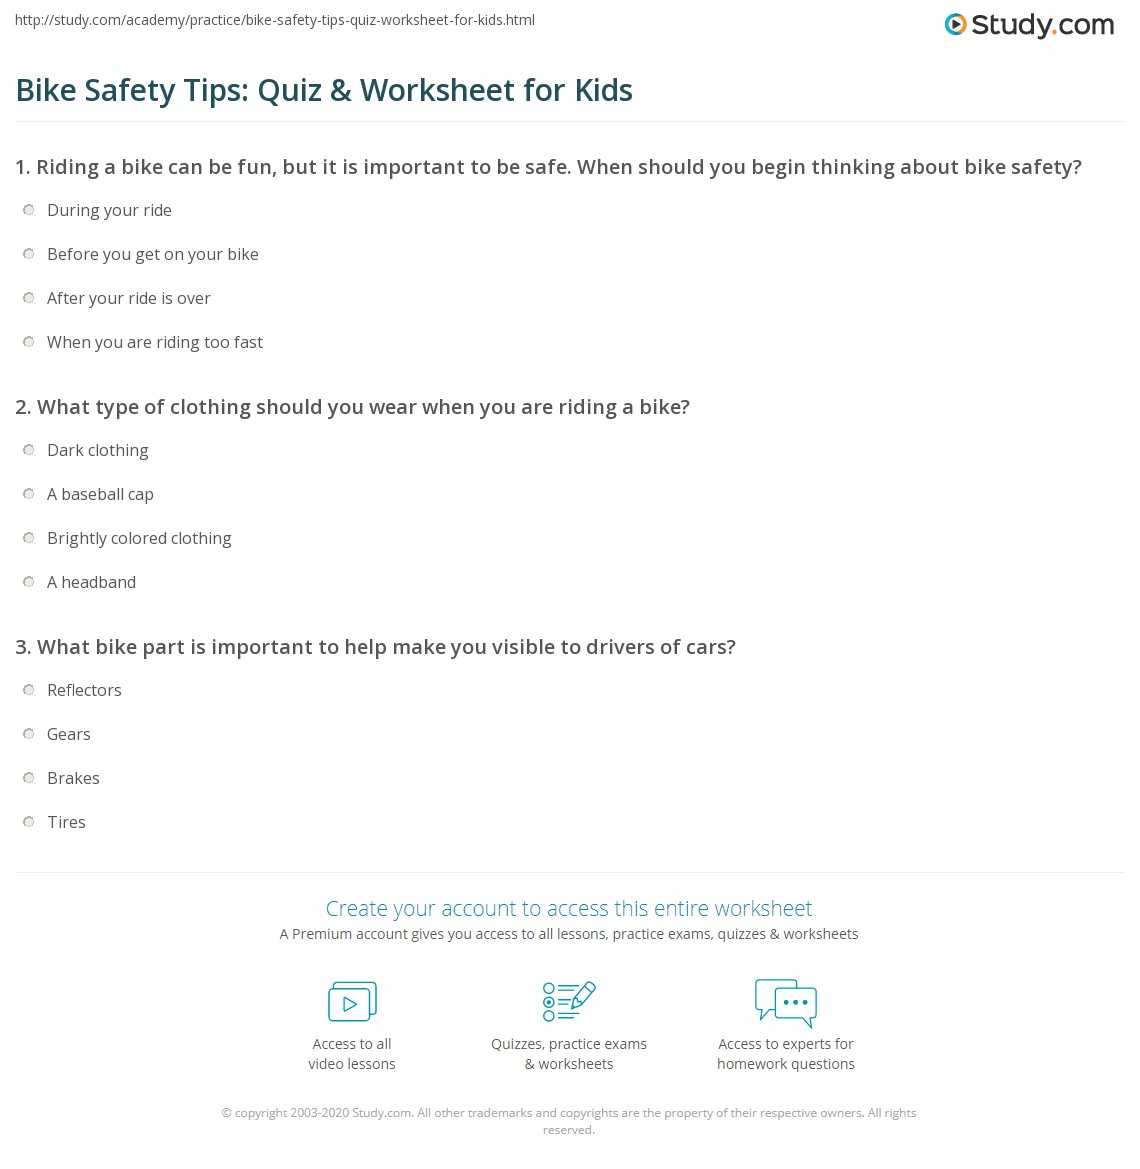 Bike Safety Tips: Quiz & Worksheet For Kids